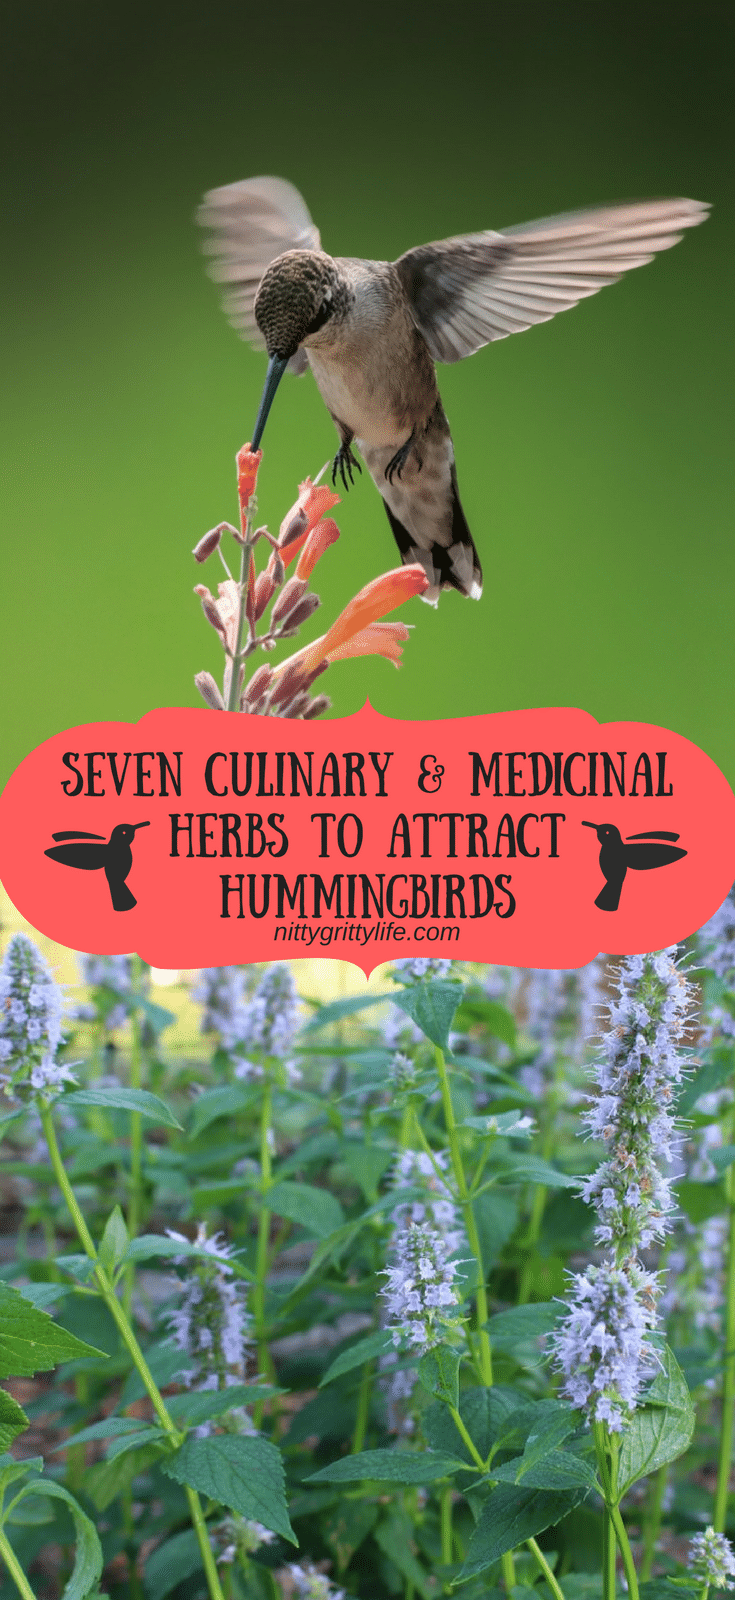 Hummingbirds are a salve for the soul.  Make your garden pull double duty by planting these culinary and medicinal herbs that also attract hummingbirds! #hummingbirds #pollinators #gardening #medicinalherbs